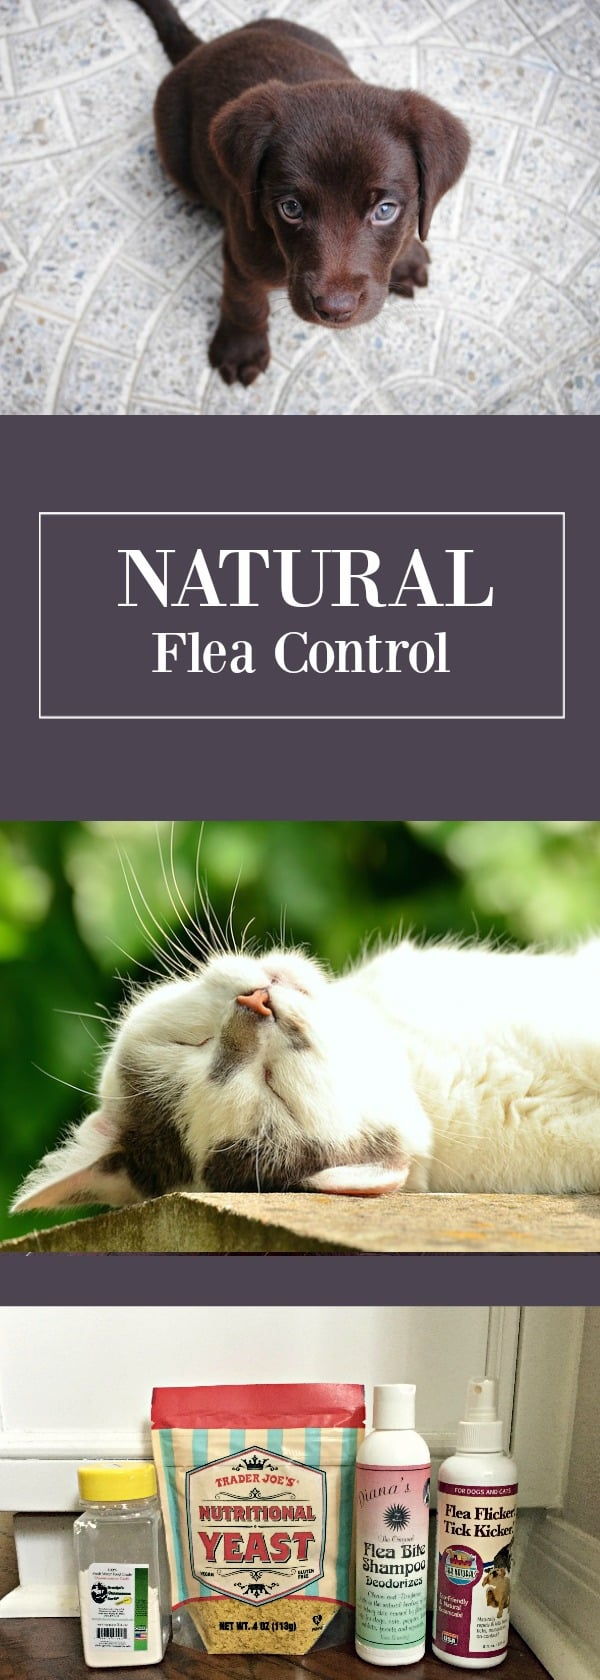 With a little bit of patience and touch of diligence, you can successfully prevent fleas naturally